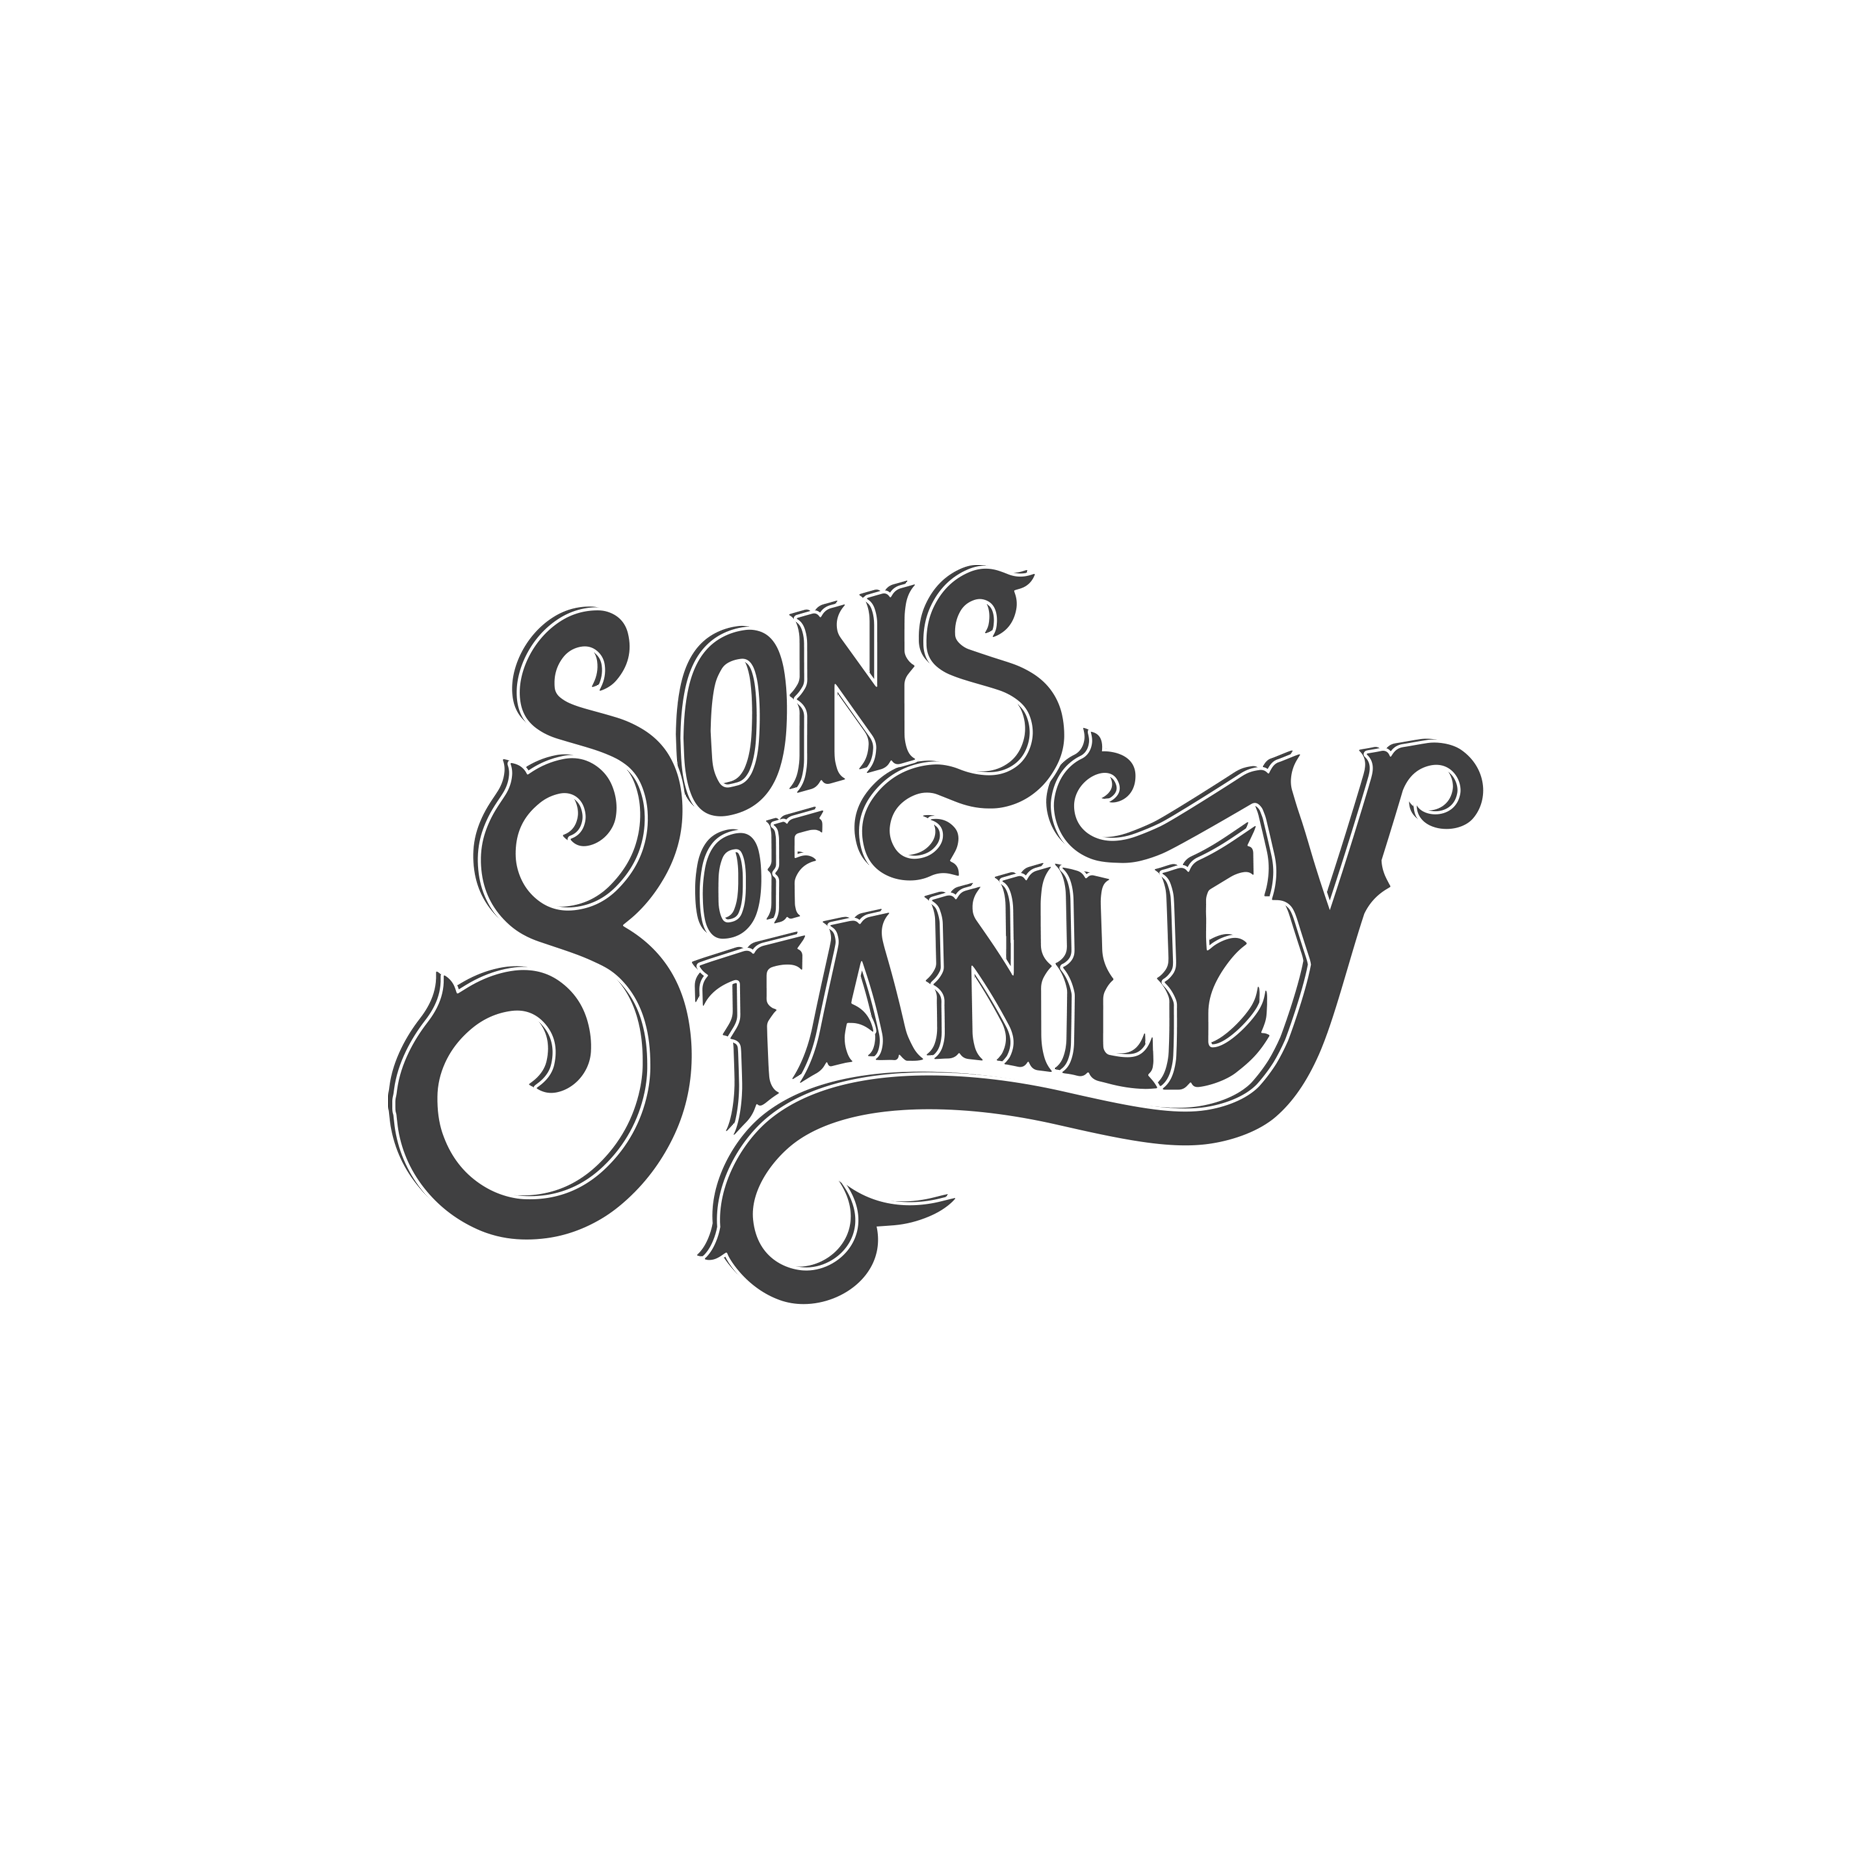 Sons of Stanley